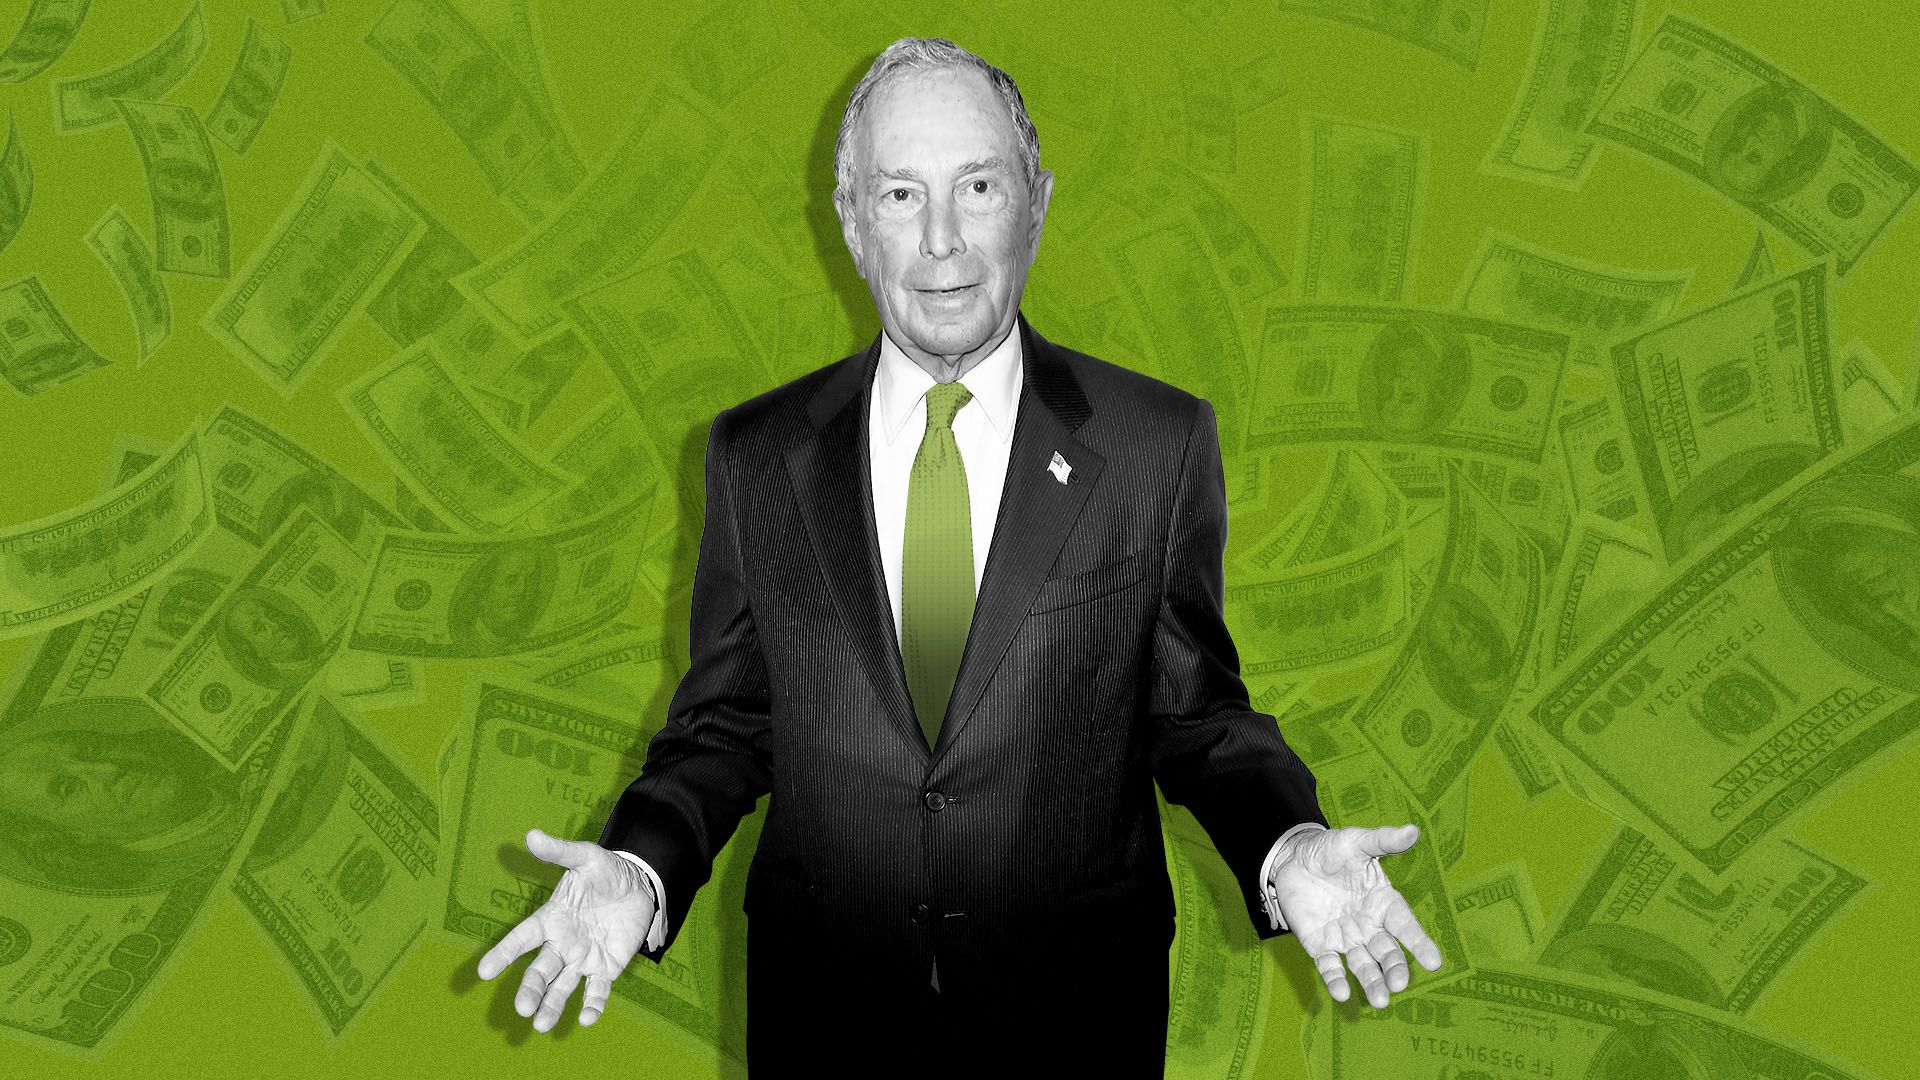 Illustration of Michael Bloomberg with money falling in the background.